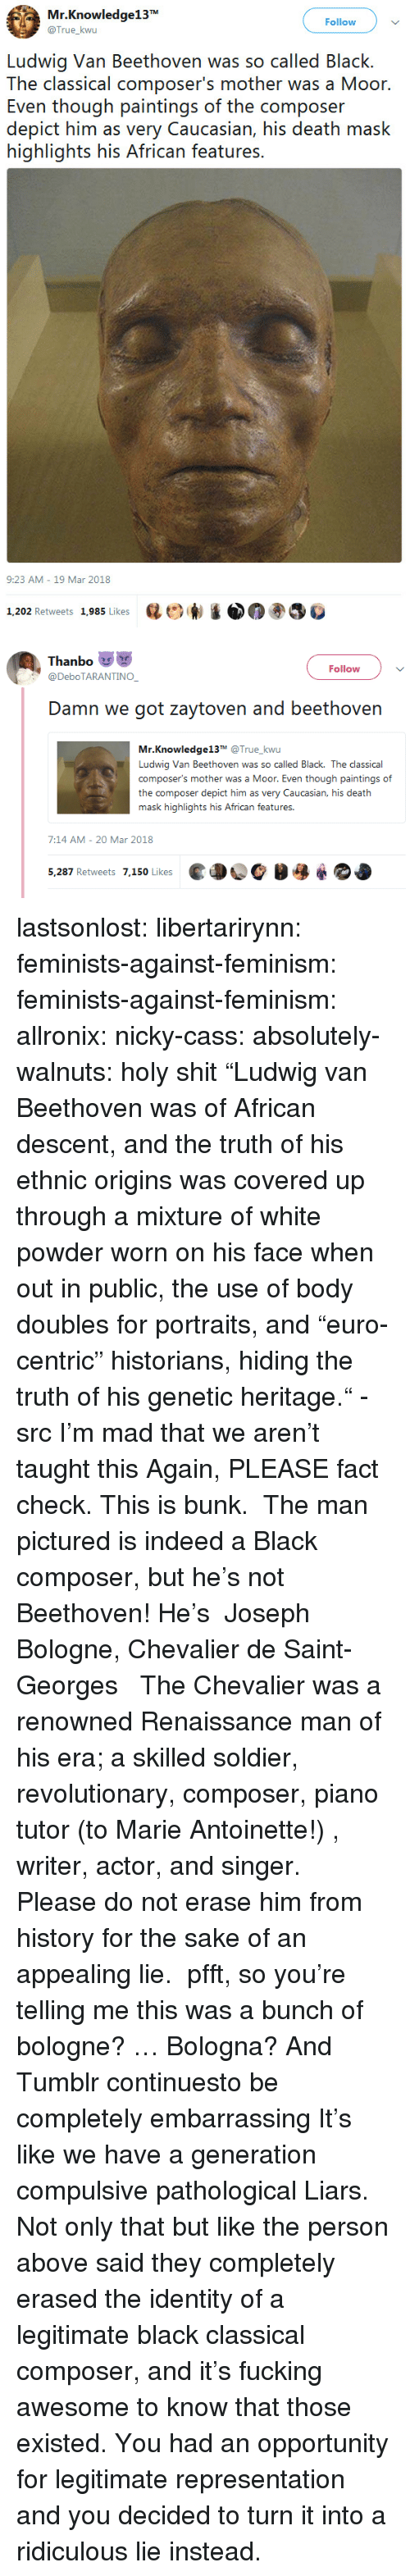 "Historians: Mr.Knowledge13  @True_kwu  Follow  Ludwig Van Beethoven was so called Black.  The classical composer's mother was a Moor  Even though paintings of the composer  depict him as very Caucasian, his death mask  highlights his African features.  9:23 AM-19 Mar 2018  1,202 Retweets 1,985 Likes  砝ビ)  ③巻   Thanbo  @DeboTARANTINO  Follow  Damn we got zaytoven and beethovern  Mr.Knowledge13T @True_kwu  Ludwig Van Beethoven was so called Black. The classical  composer's mother was a Moor. Even though paintings of  the composer depict him as very Caucasian, his death  .む  7:14 AM- 20 Mar 2018  ed OC  5,287 Retweets 7,150 Likes lastsonlost:  libertarirynn:  feminists-against-feminism:  feminists-against-feminism: allronix:  nicky-cass:  absolutely-walnuts:  holy shit ""Ludwig van Beethoven was of African descent, and the truth of his ethnic origins was covered up through a mixture of white powder worn on his face when out in public, the use of body doubles for portraits, and ""euro-centric"" historians, hiding the truth of his genetic heritage."" - src   I'm mad that we aren't taught this  Again, PLEASE fact check. This is bunk.  The man pictured is indeed a Black composer, but he's not Beethoven! He's   Joseph Bologne, Chevalier de Saint-Georges    The Chevalier was a renowned Renaissance man of his era; a skilled soldier, revolutionary, composer, piano tutor (to Marie Antoinette!) , writer, actor, and singer.  Please do not erase him from history for the sake of an appealing lie.   pfft, so you're telling me this was a bunch of bologne?  … Bologna?  And Tumblr continuesto be completely embarrassing  It's like we have a generation compulsive pathological Liars.  Not only that but like the person above said they completely erased the identity of a legitimate black classical composer, and it's fucking awesome to know that those existed. You had an opportunity for legitimate representation and you decided to turn it into a ridiculous lie instead."